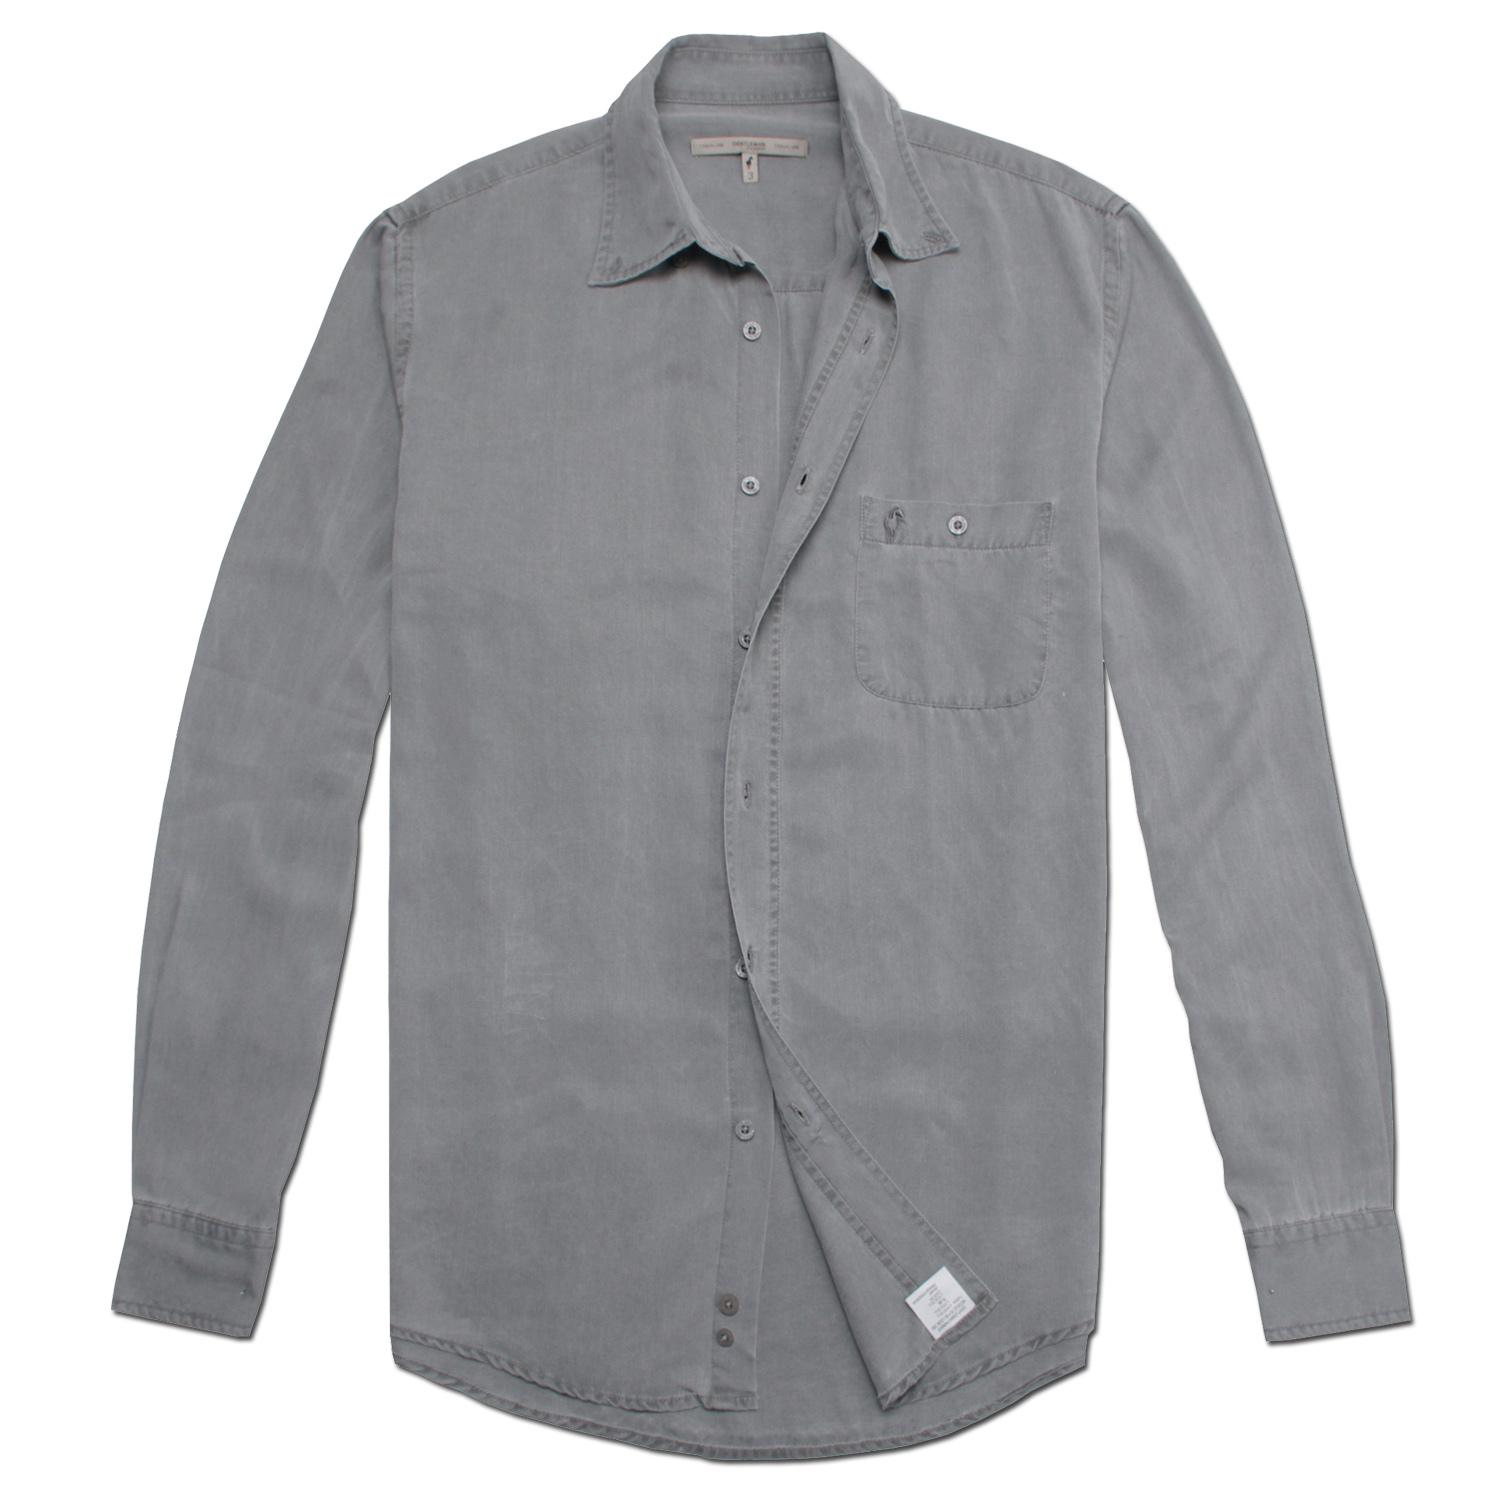 Best online clothes shopping for men